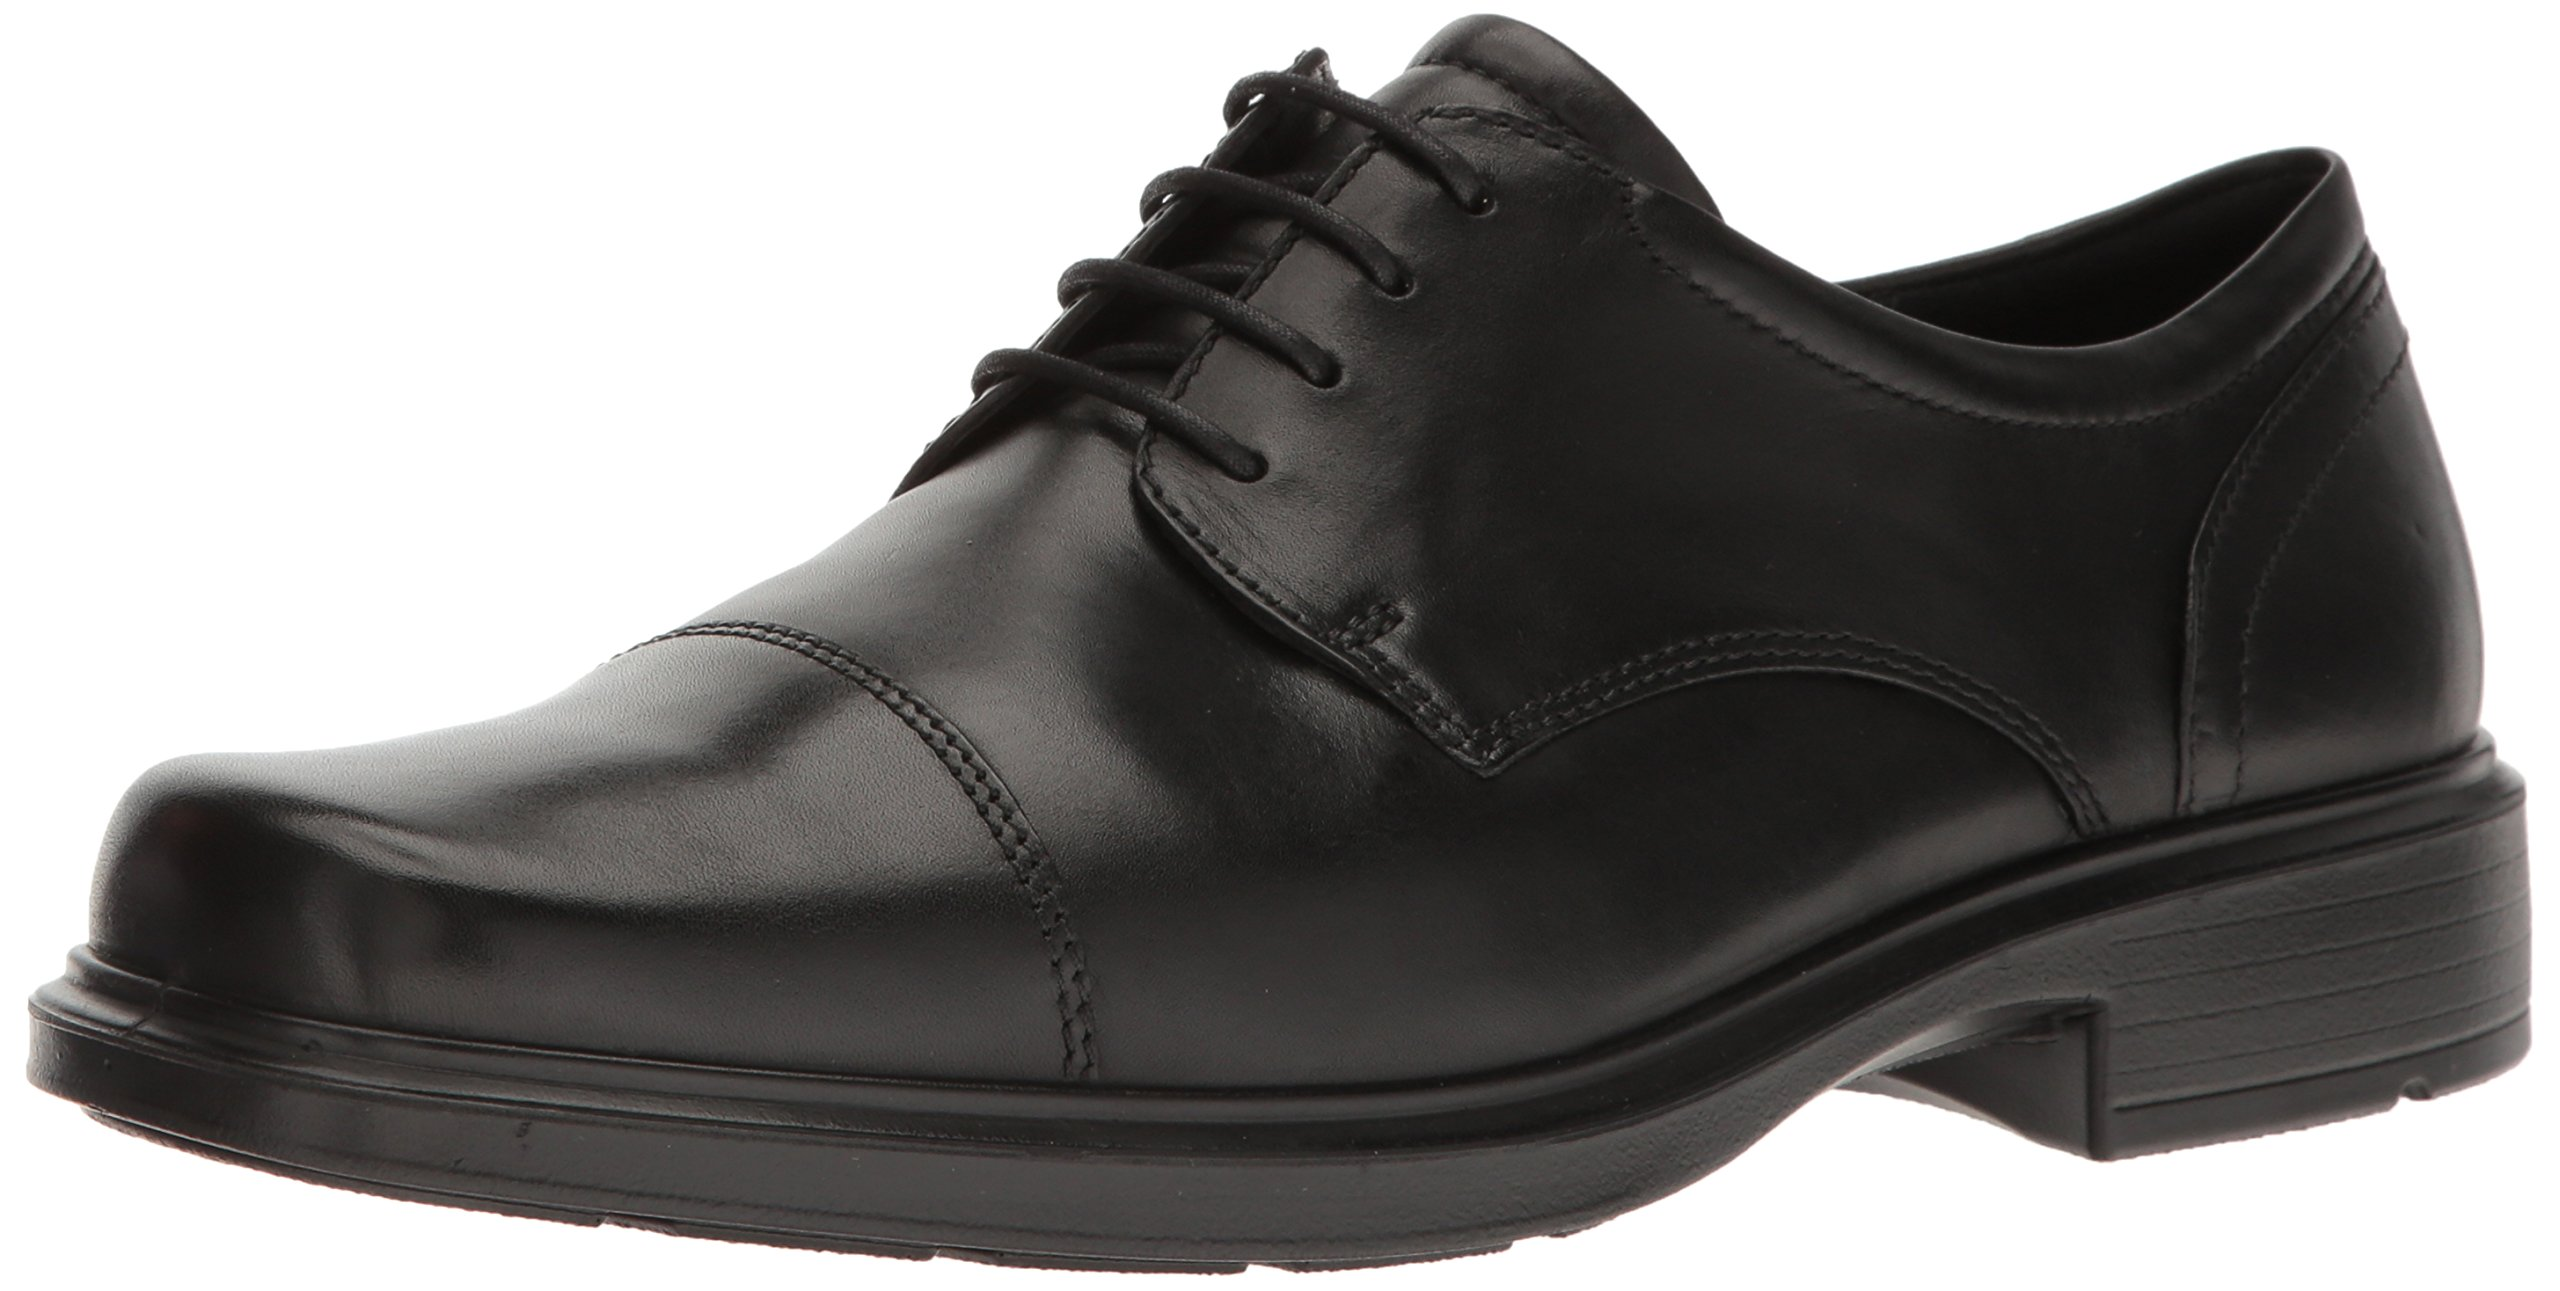 ECCO Men's Helsinki Cap Toe 39 EU/5-5.5 M Oxford, Black, 44 EU/10-10.5 M US